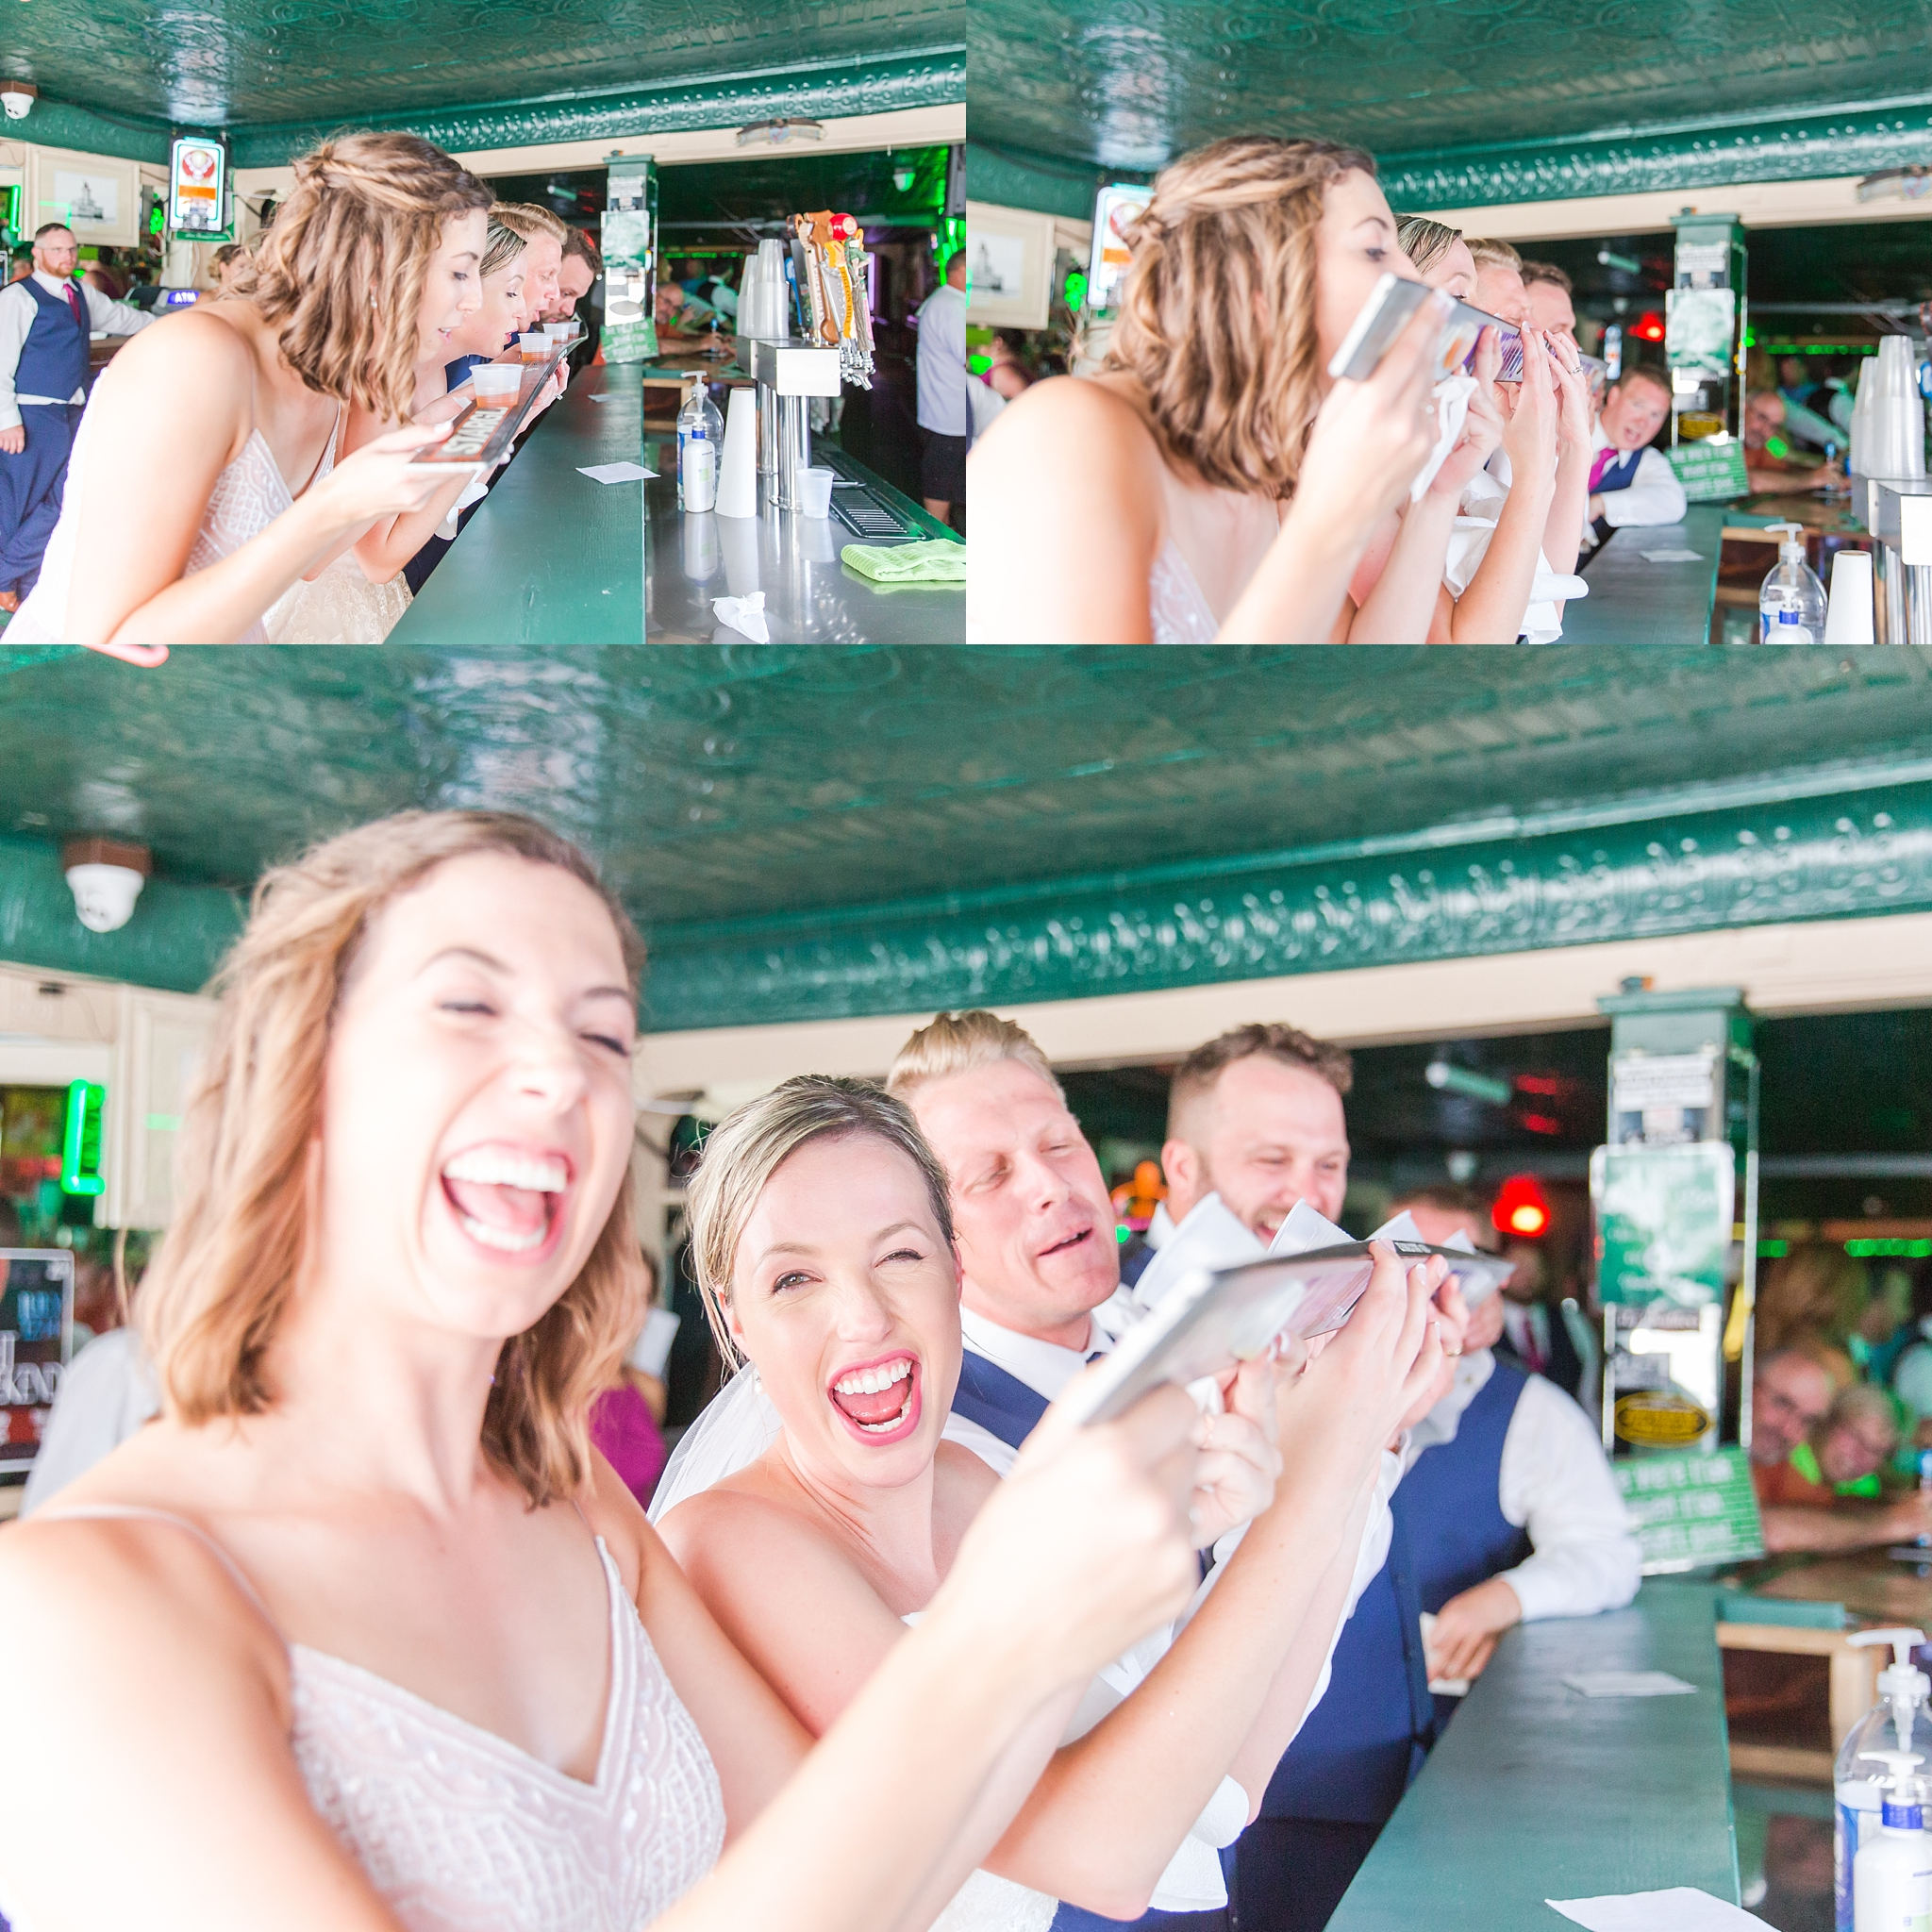 fun-nautical-wedding-photos-at-the-bean-dock-in-downtown-port-huron-michigan-by-courtney-carolyn-photography_0069.jpg